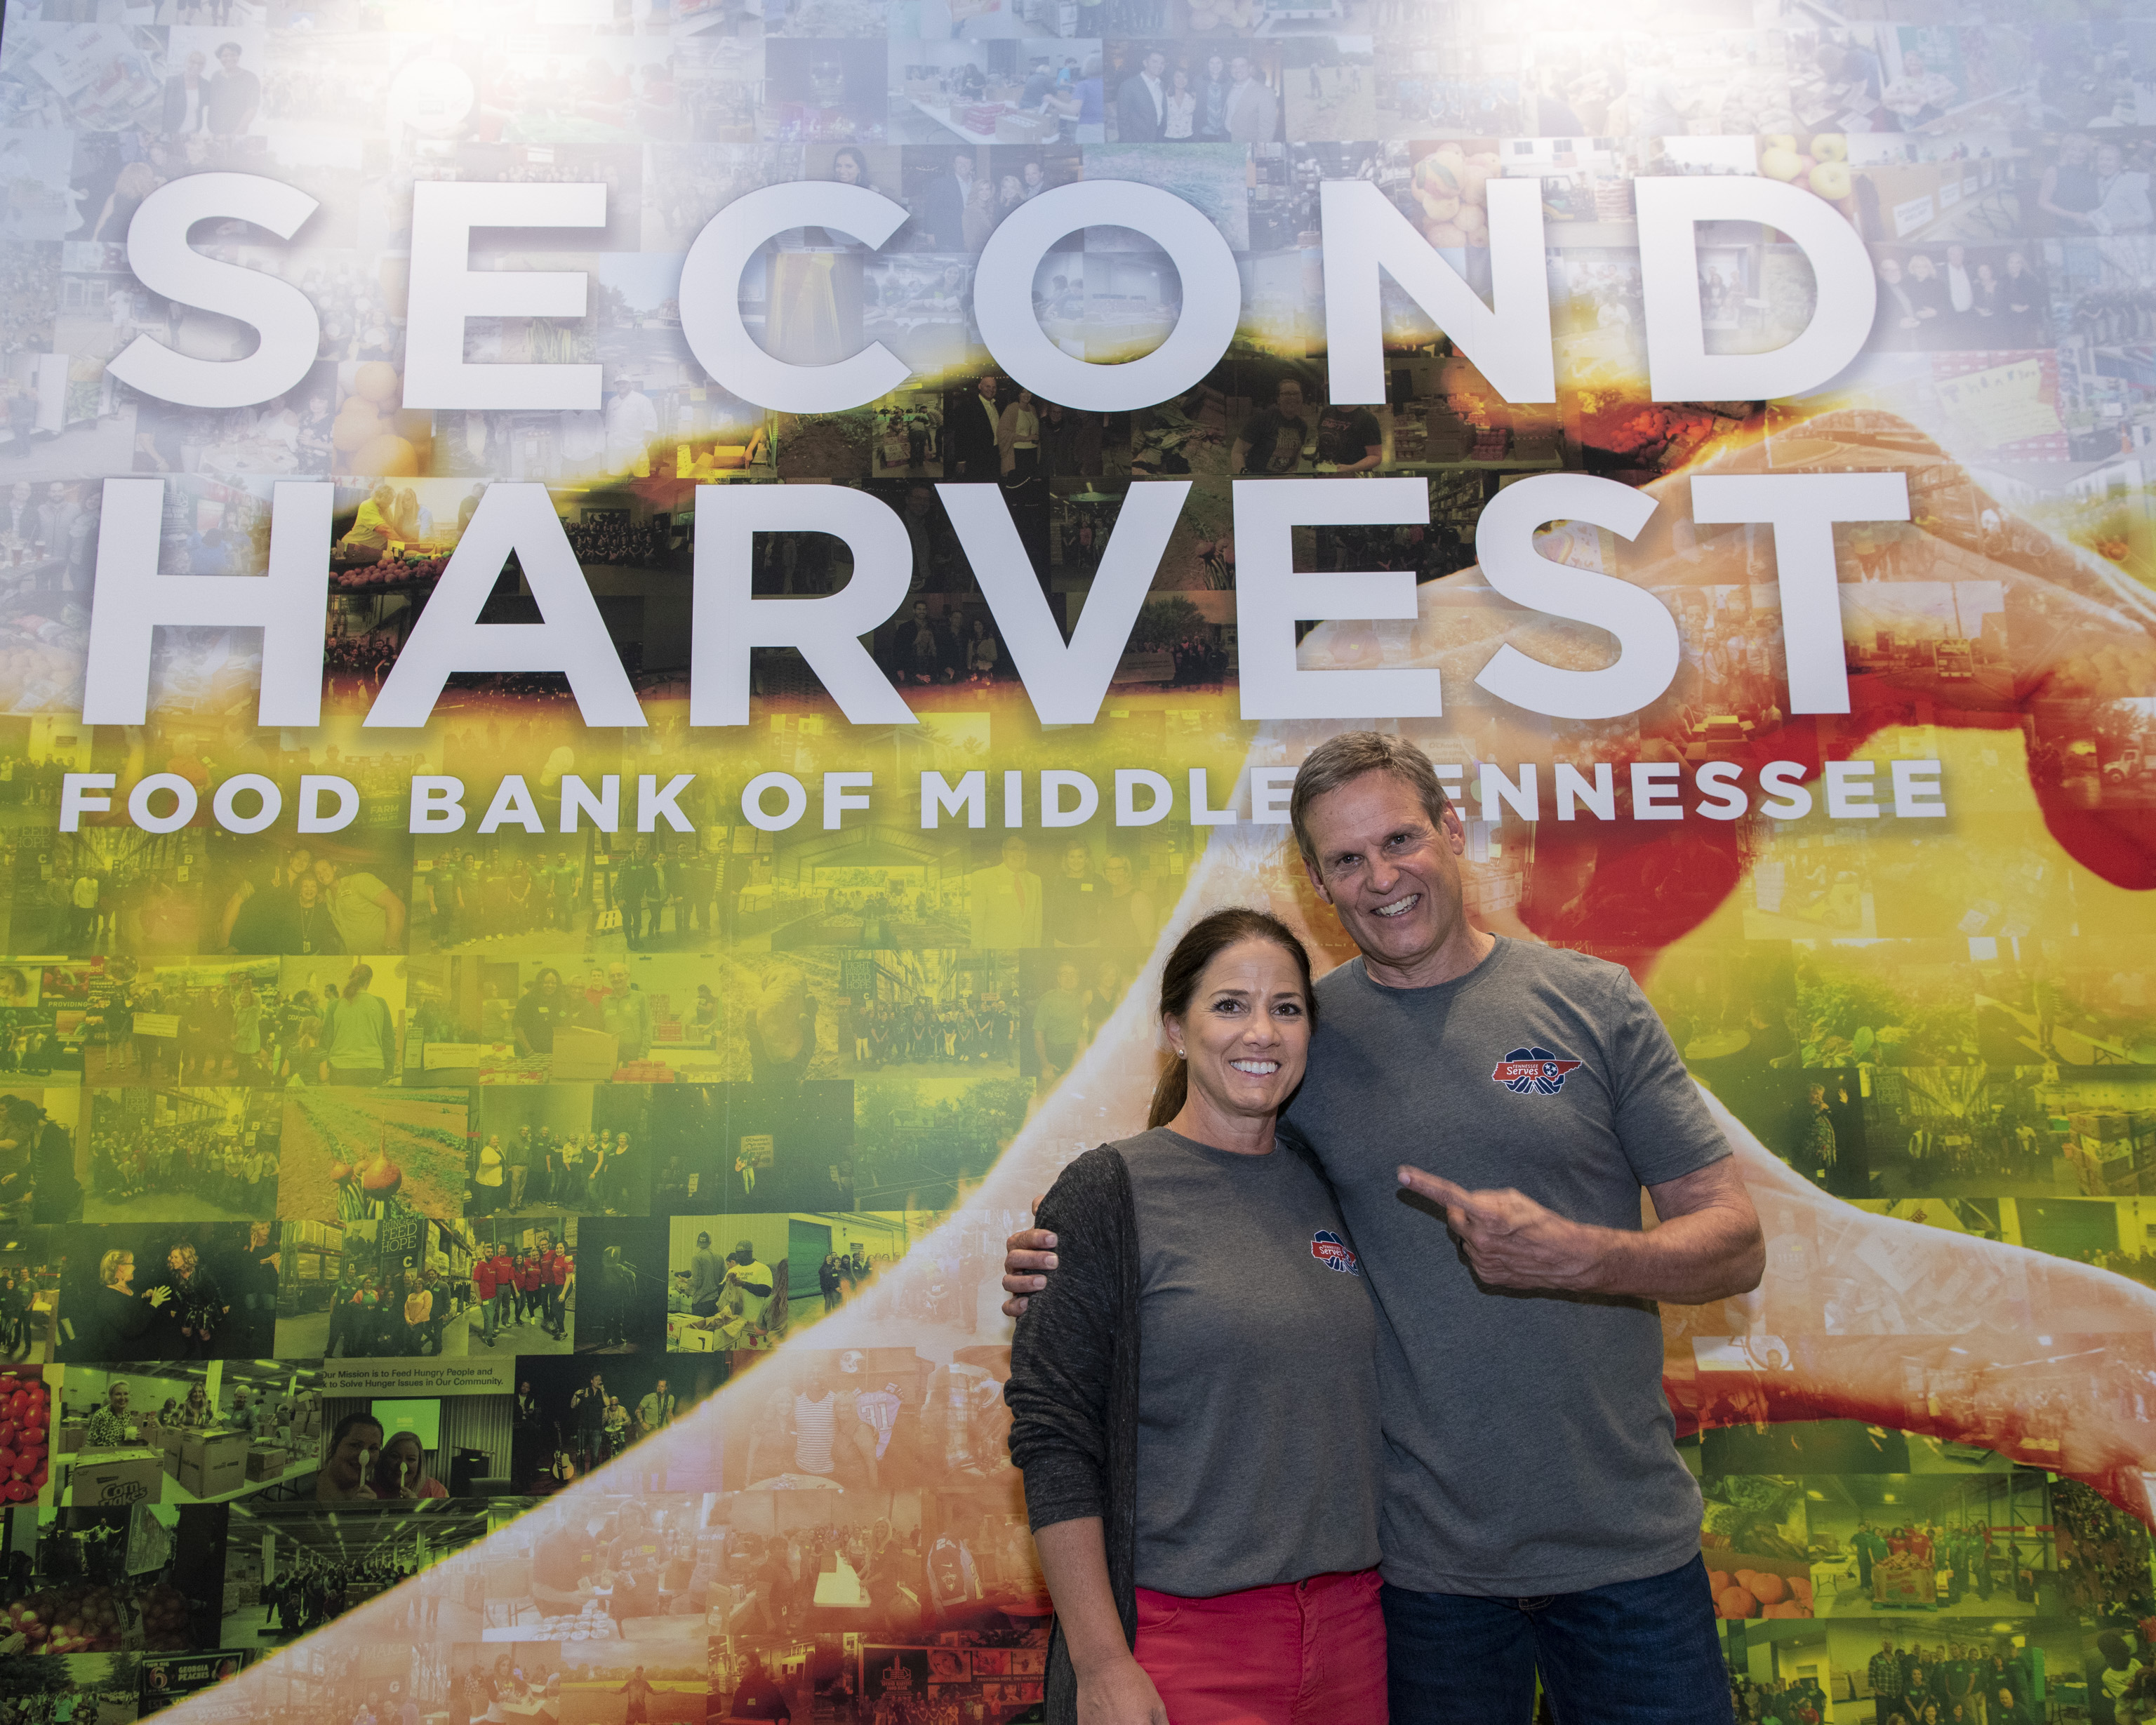 First Lady and Governor Lee at the launch of Tennessee Serves making senior nutrition boxes at Second Harvest